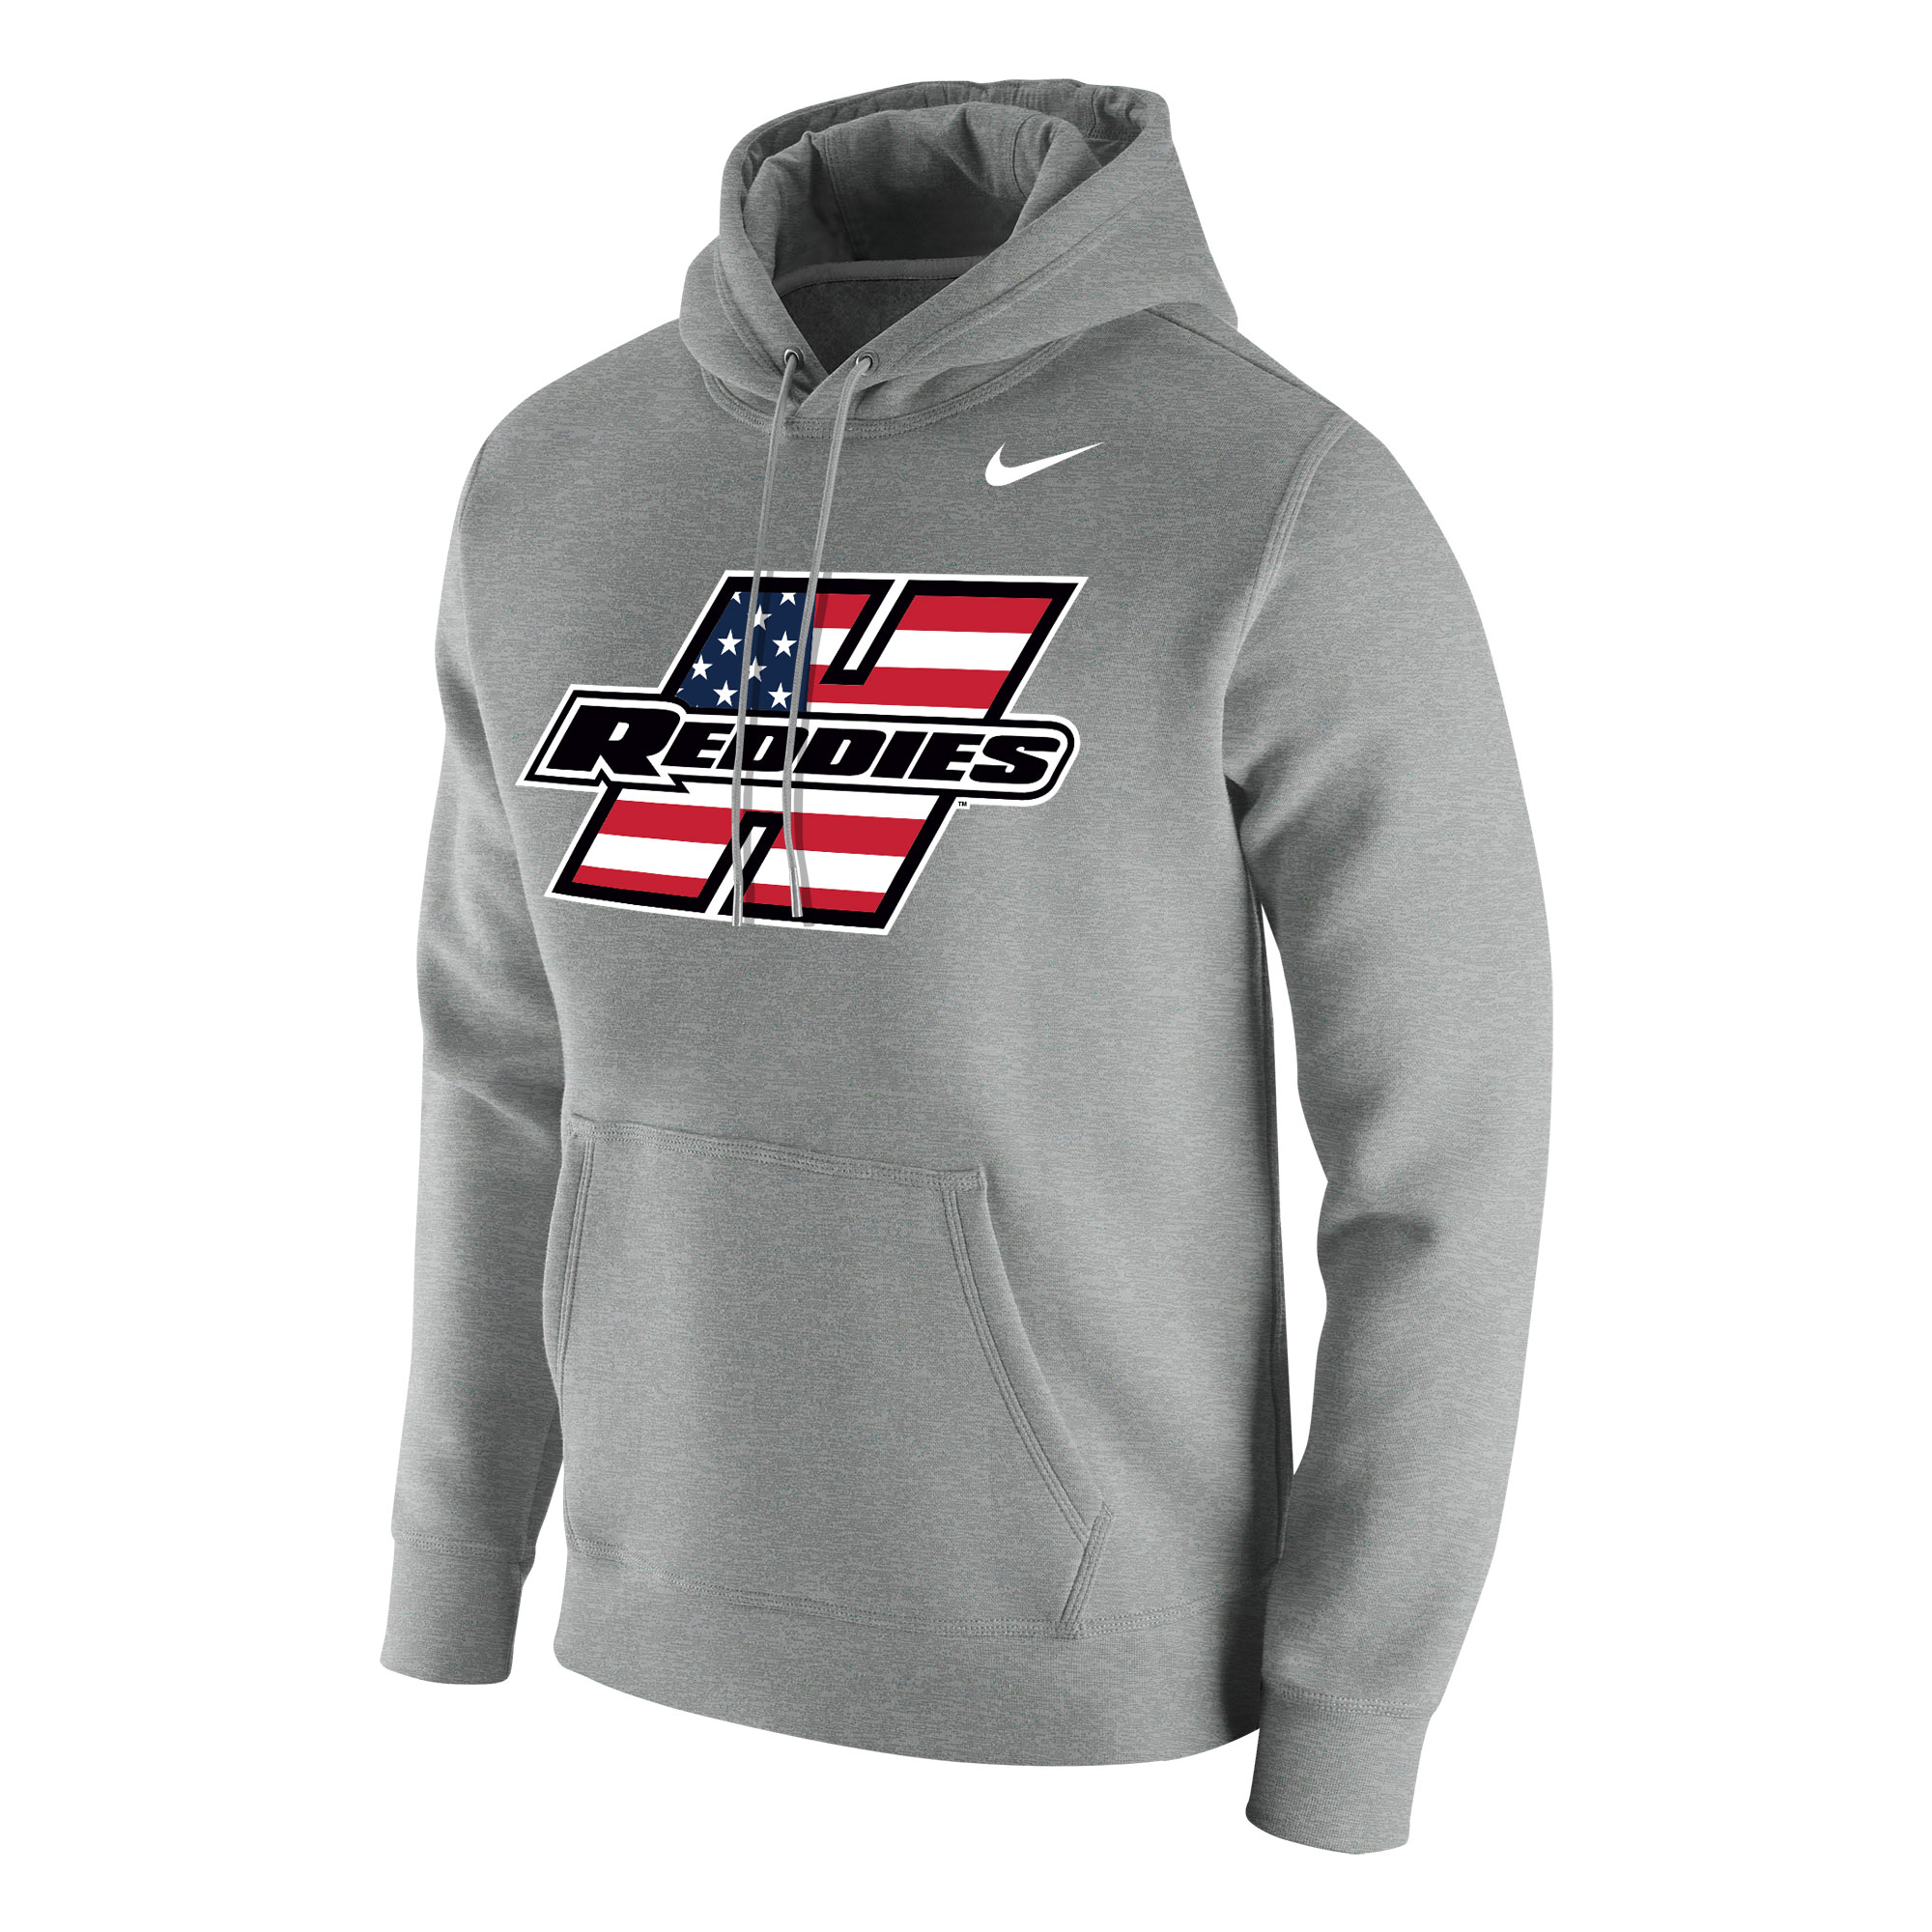 Henderson Reddies American Flag Club Fleece Hoodie